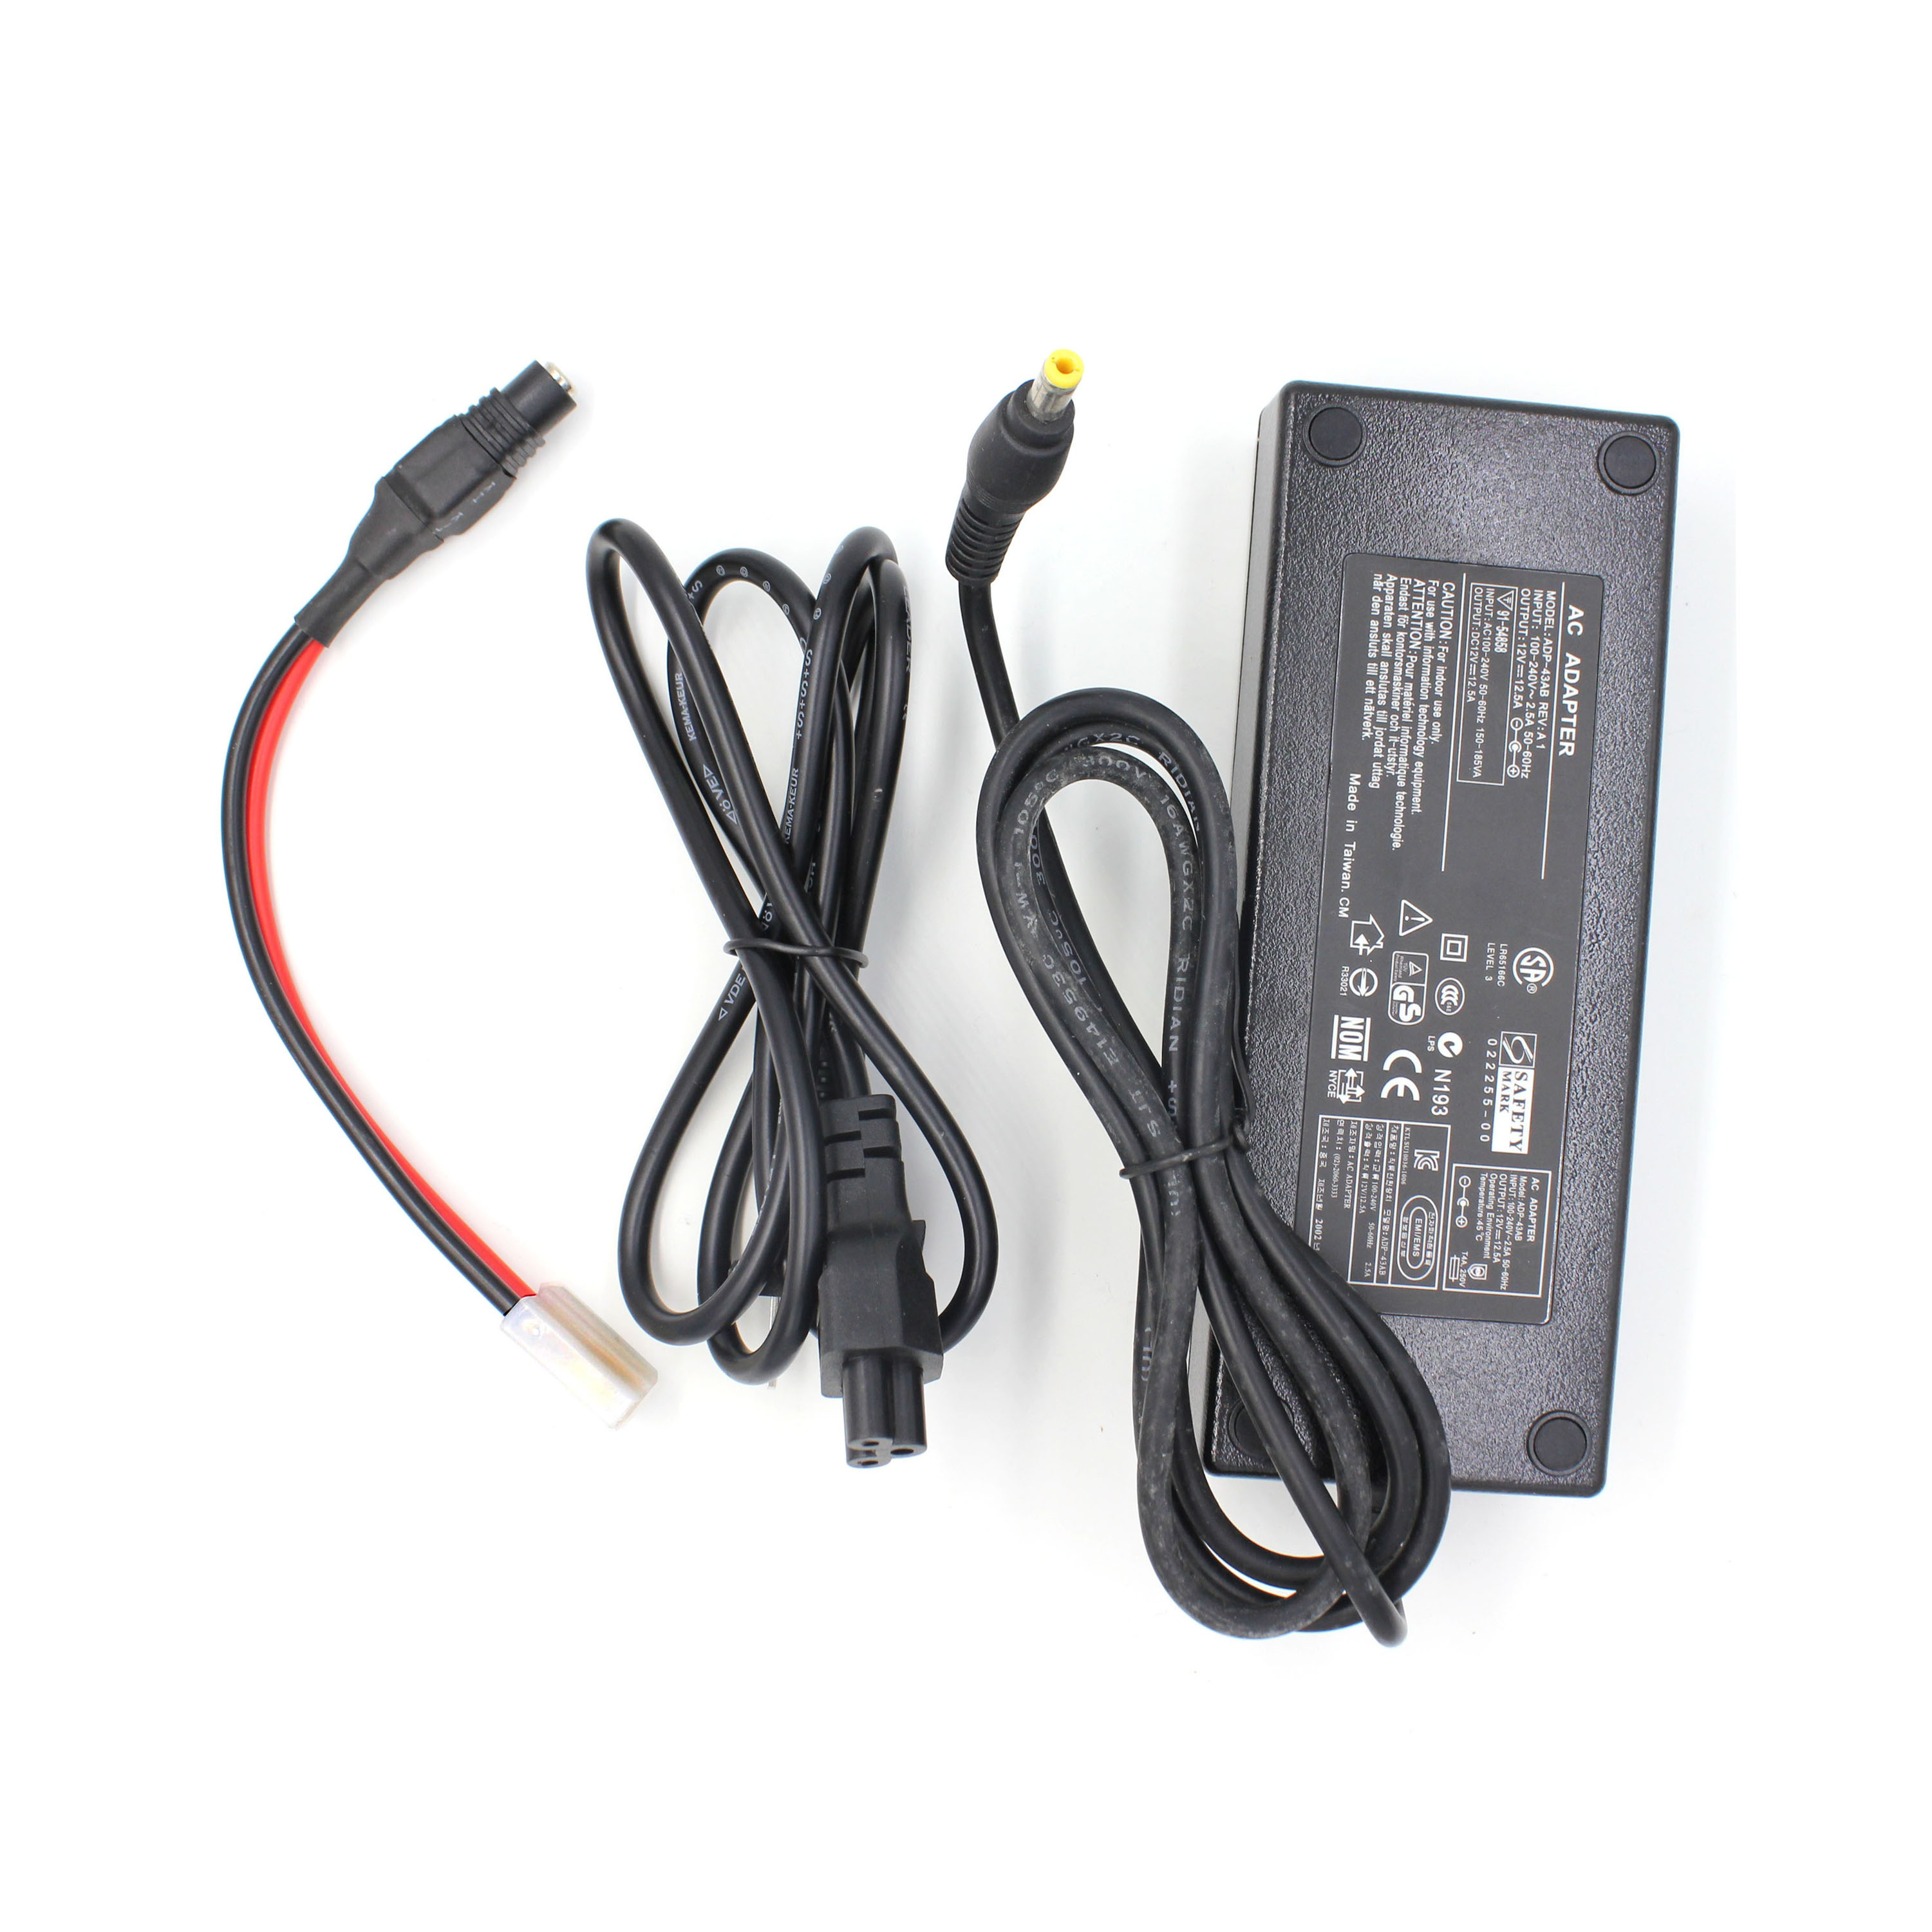 ANYSECU AC-125 12V 10A AC Adapter Power Supply  For Mobile Car Radio TH-9800 TH-9000D TH-7800 TH-8600 KT-780 Plus KT-980 Plus